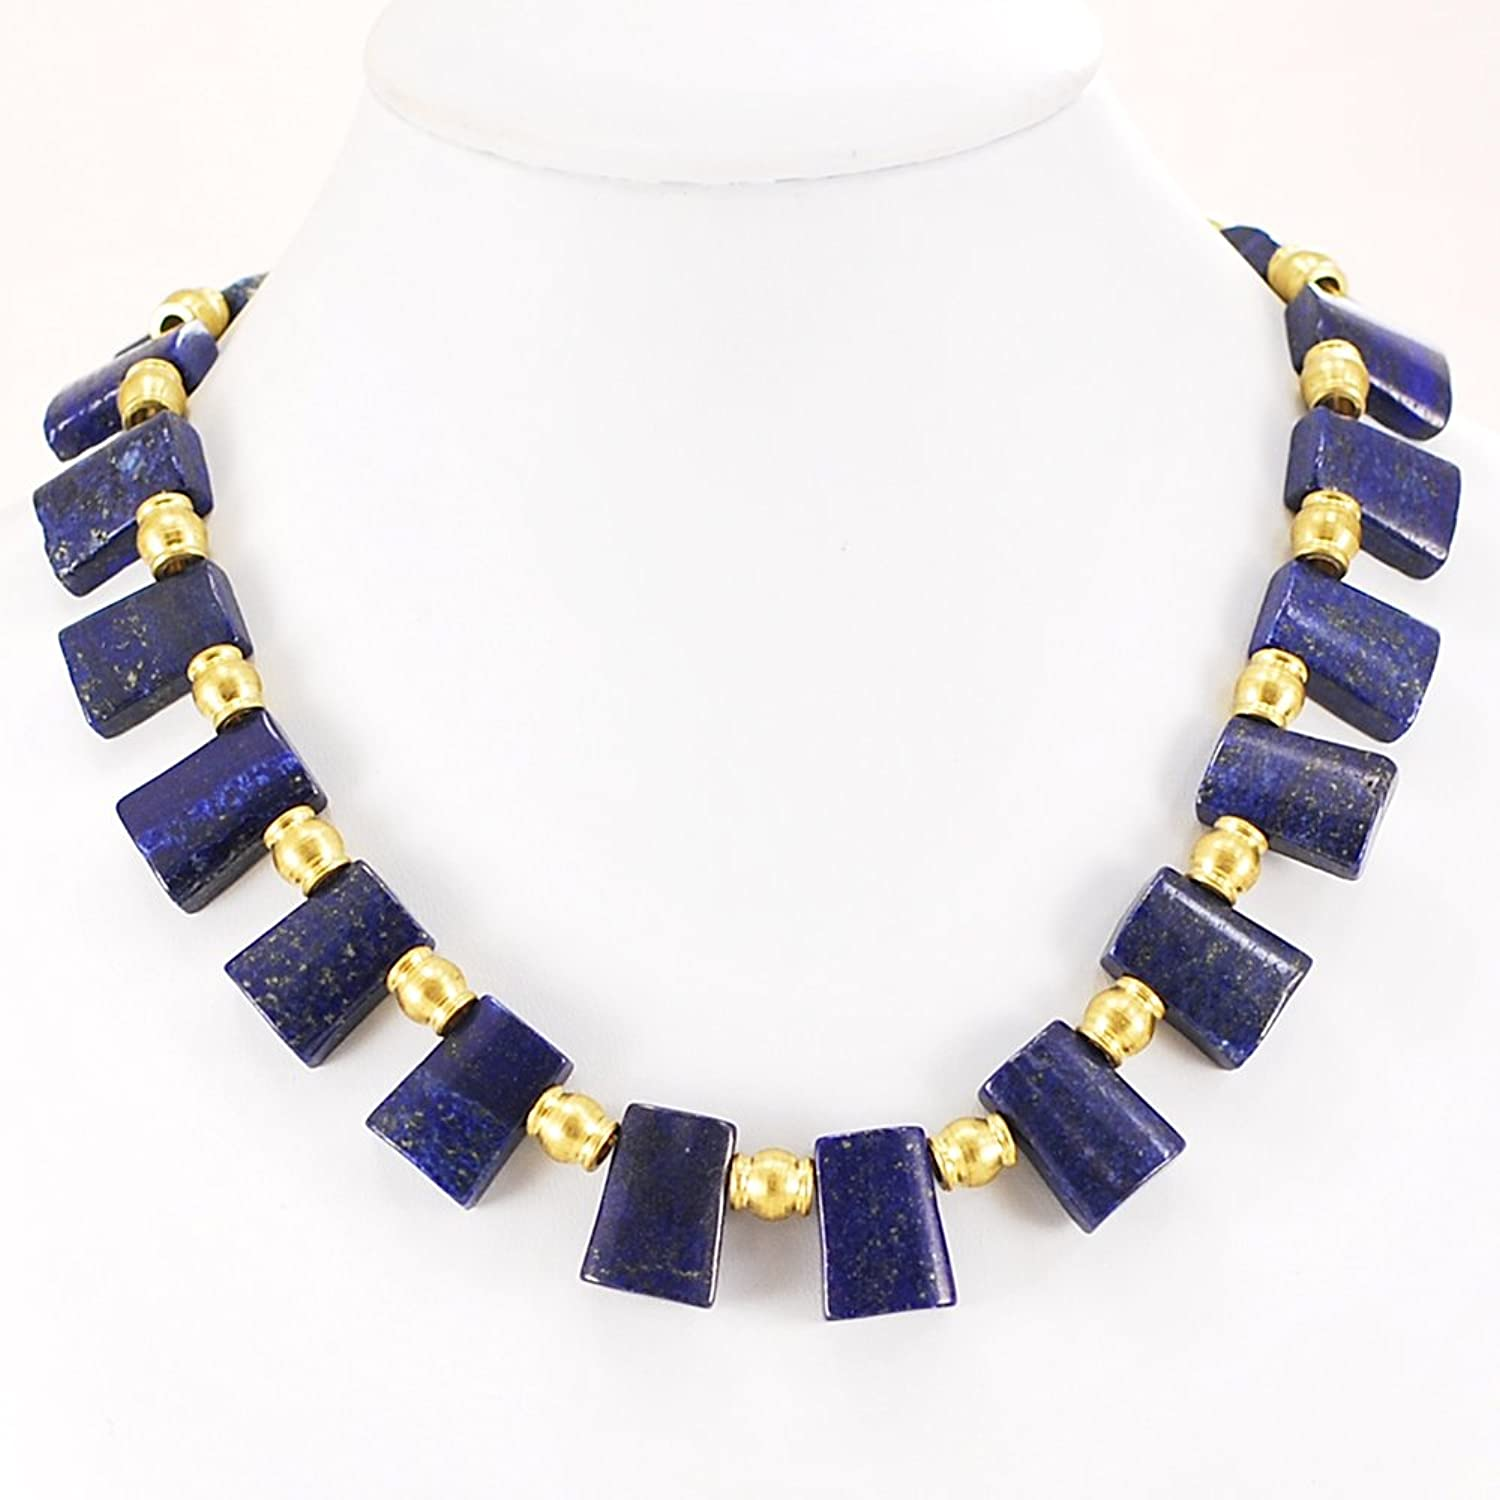 "001 Ny6design Blue Lapis Lazuli & Brass Necklace w Gold Plated Toggle 18.5-20"" N15101401e"